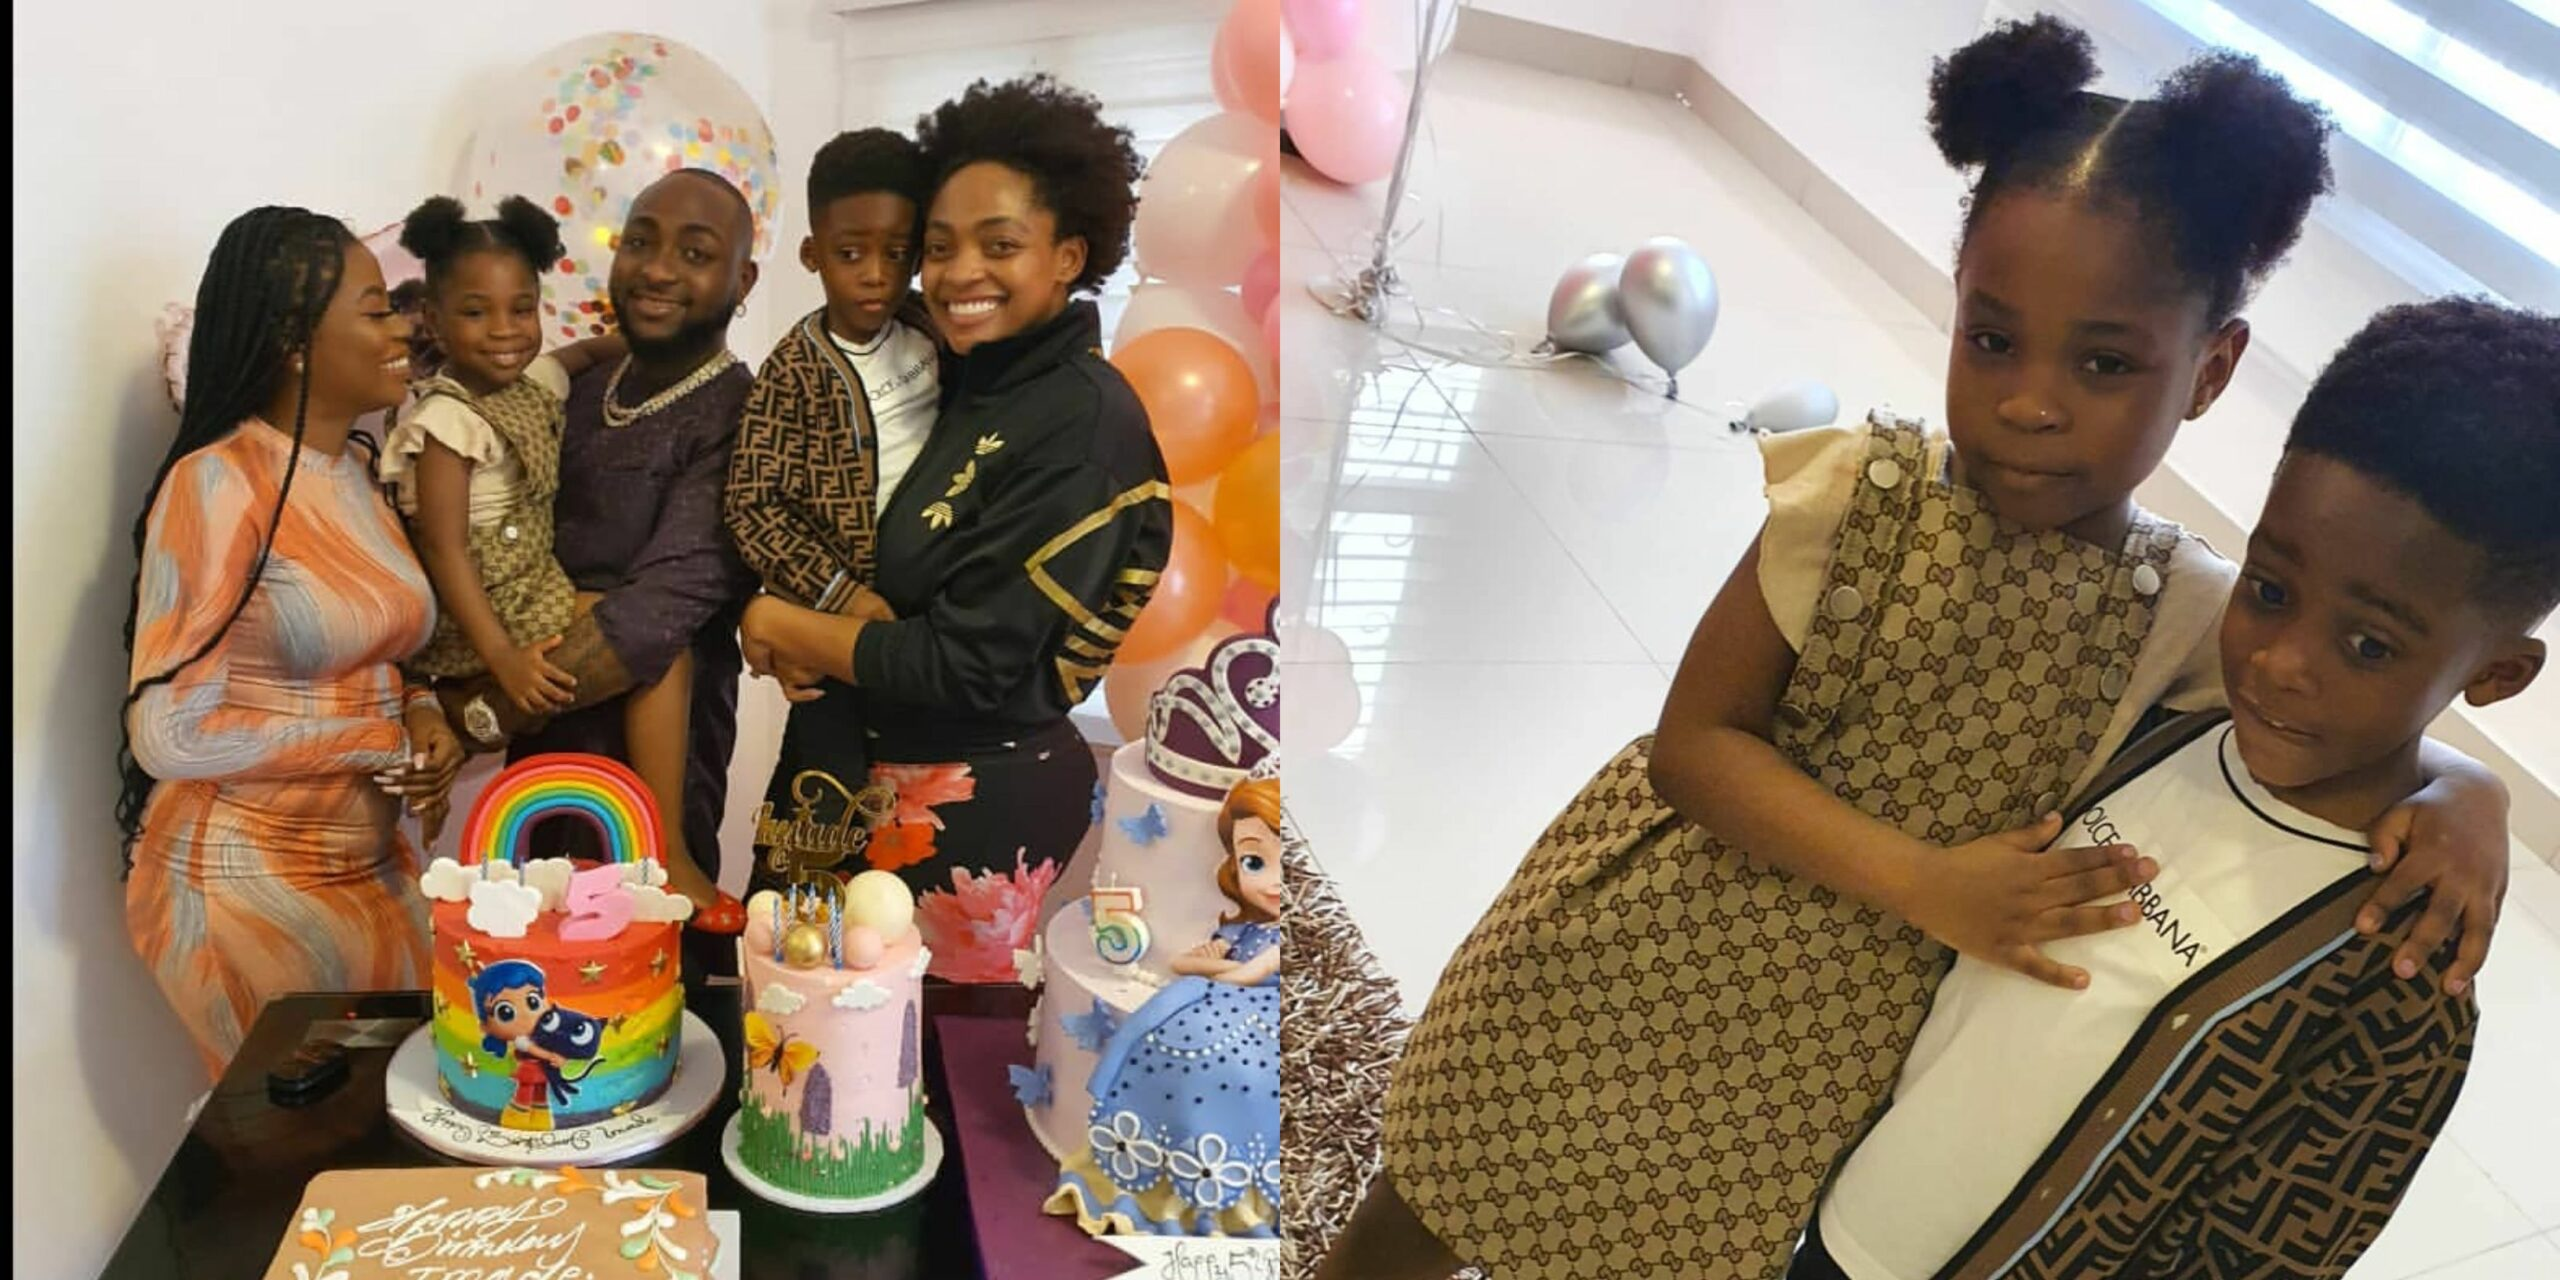 Tiwa Savage's son Jam Jam visits his bestie, Imade on her 5th birthday